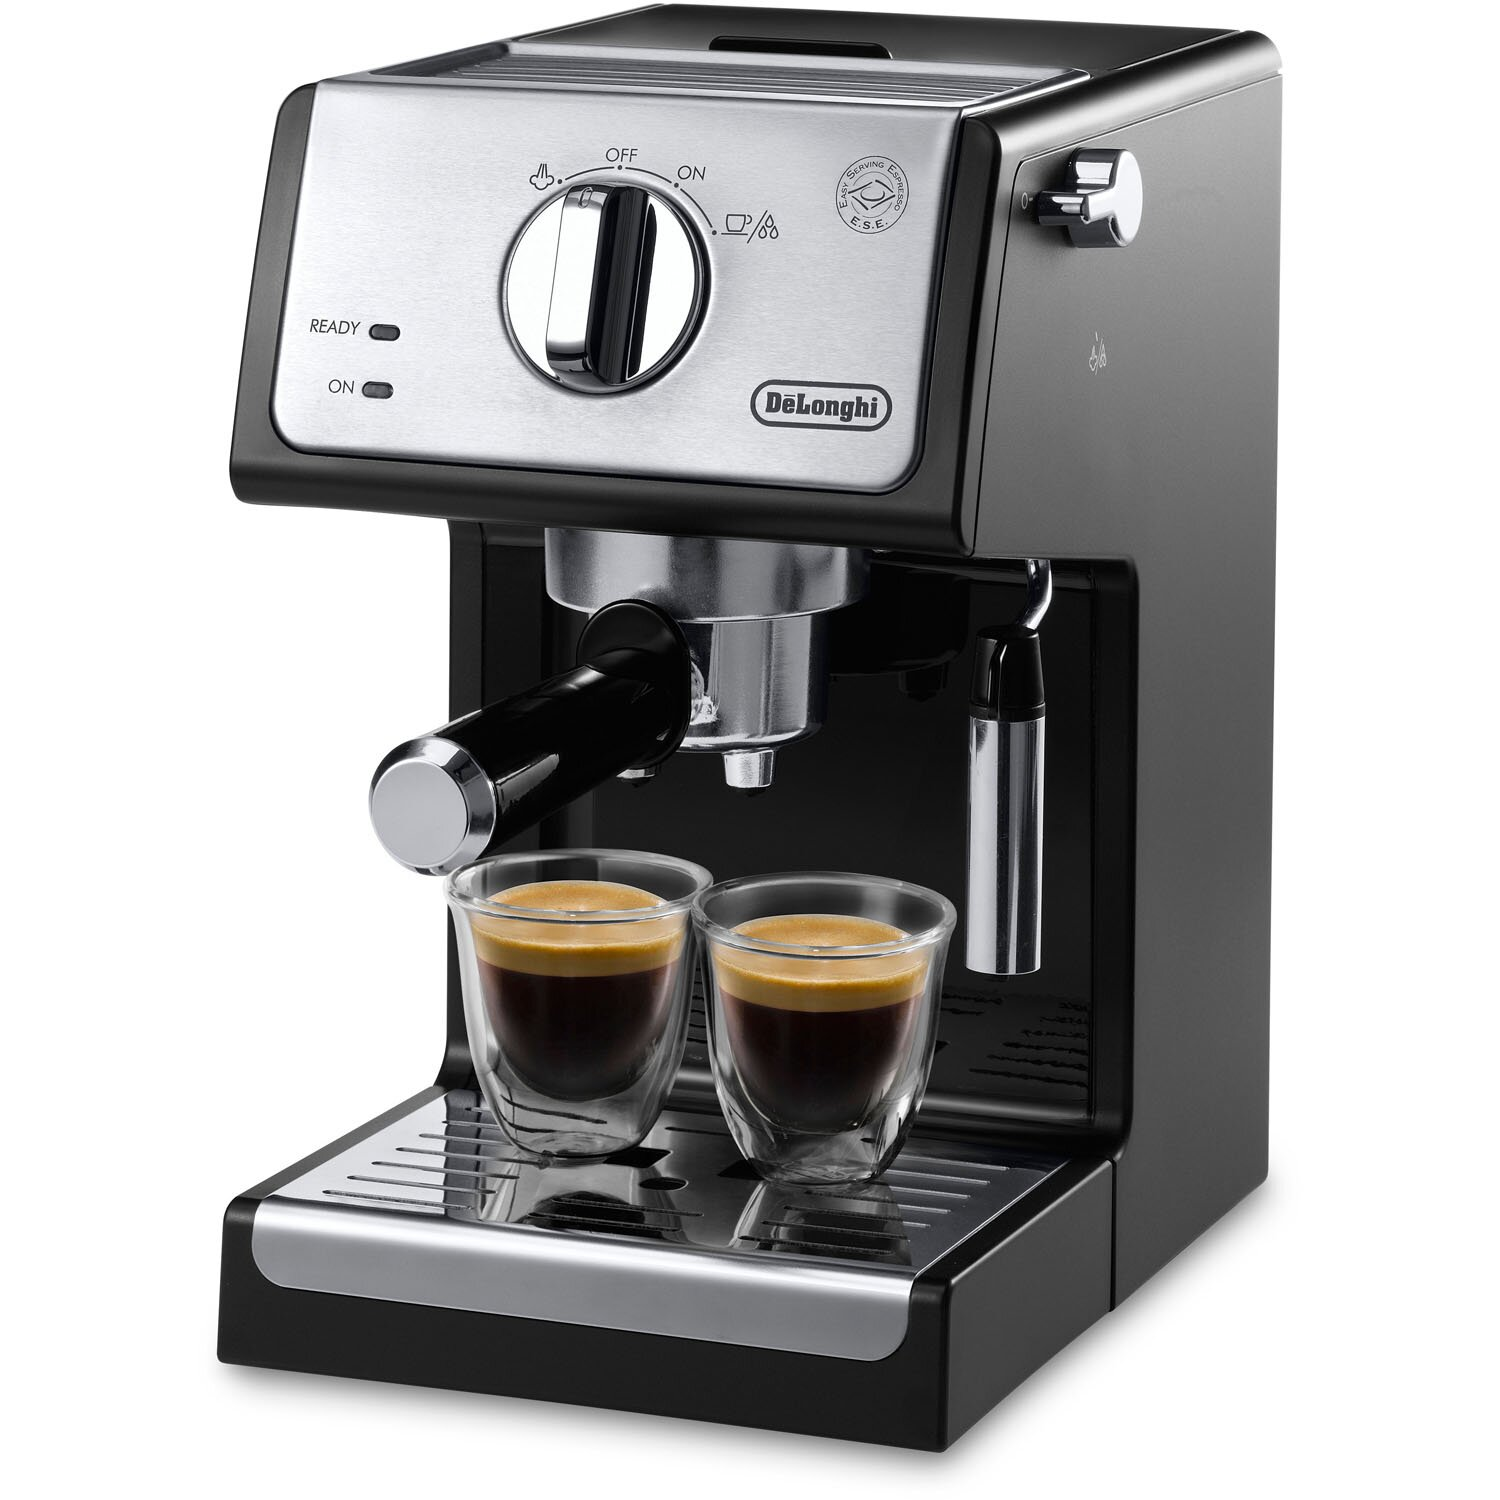 DeLonghi 15 Bar Pump Coffee/Espresso Maker & Reviews Wayfair